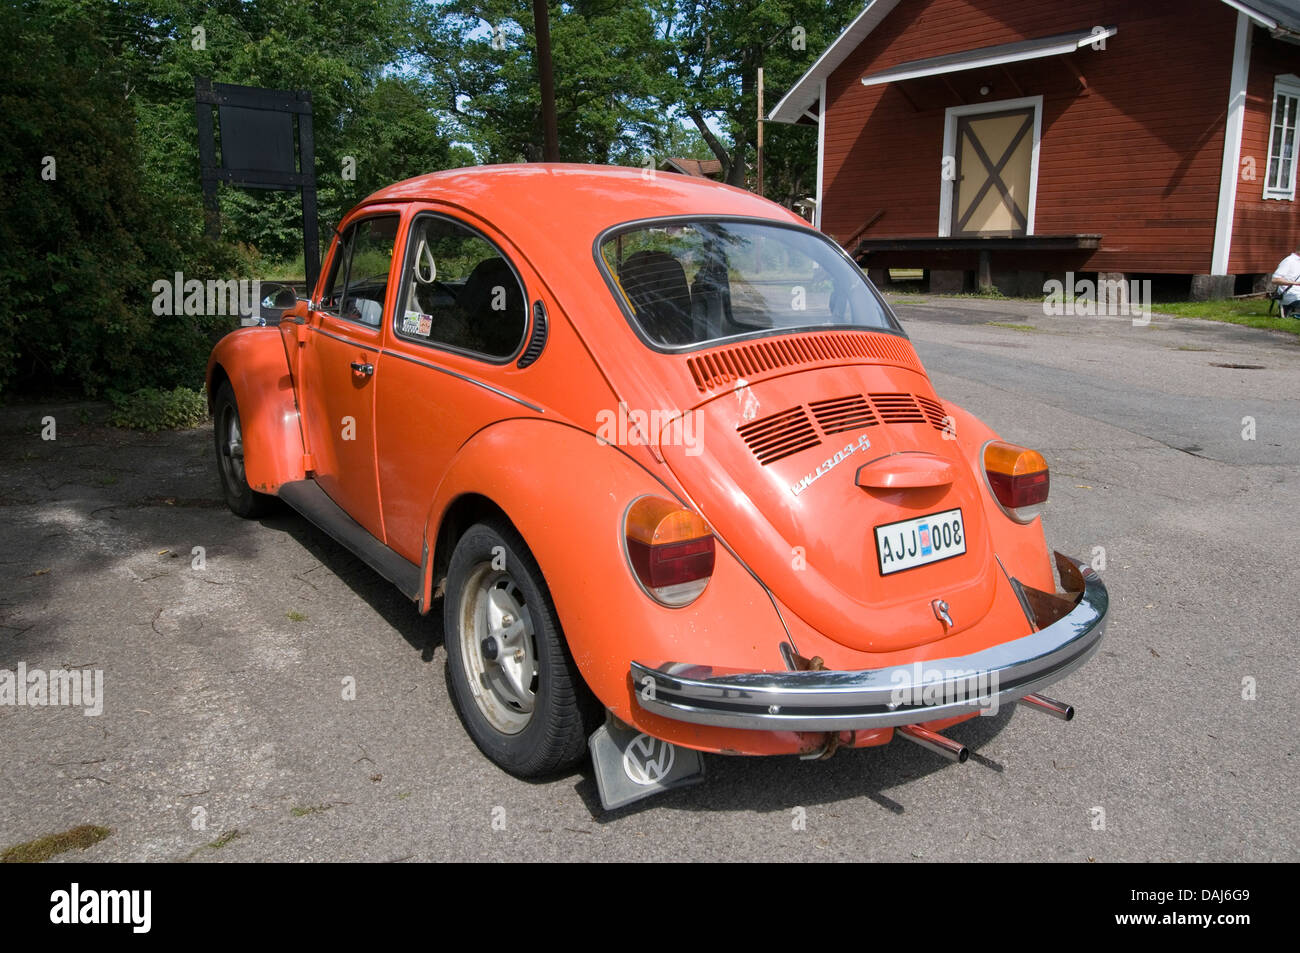 volkswagen VW beetle super superbeetle late model 1303 bug aircooled engine - Stock Image